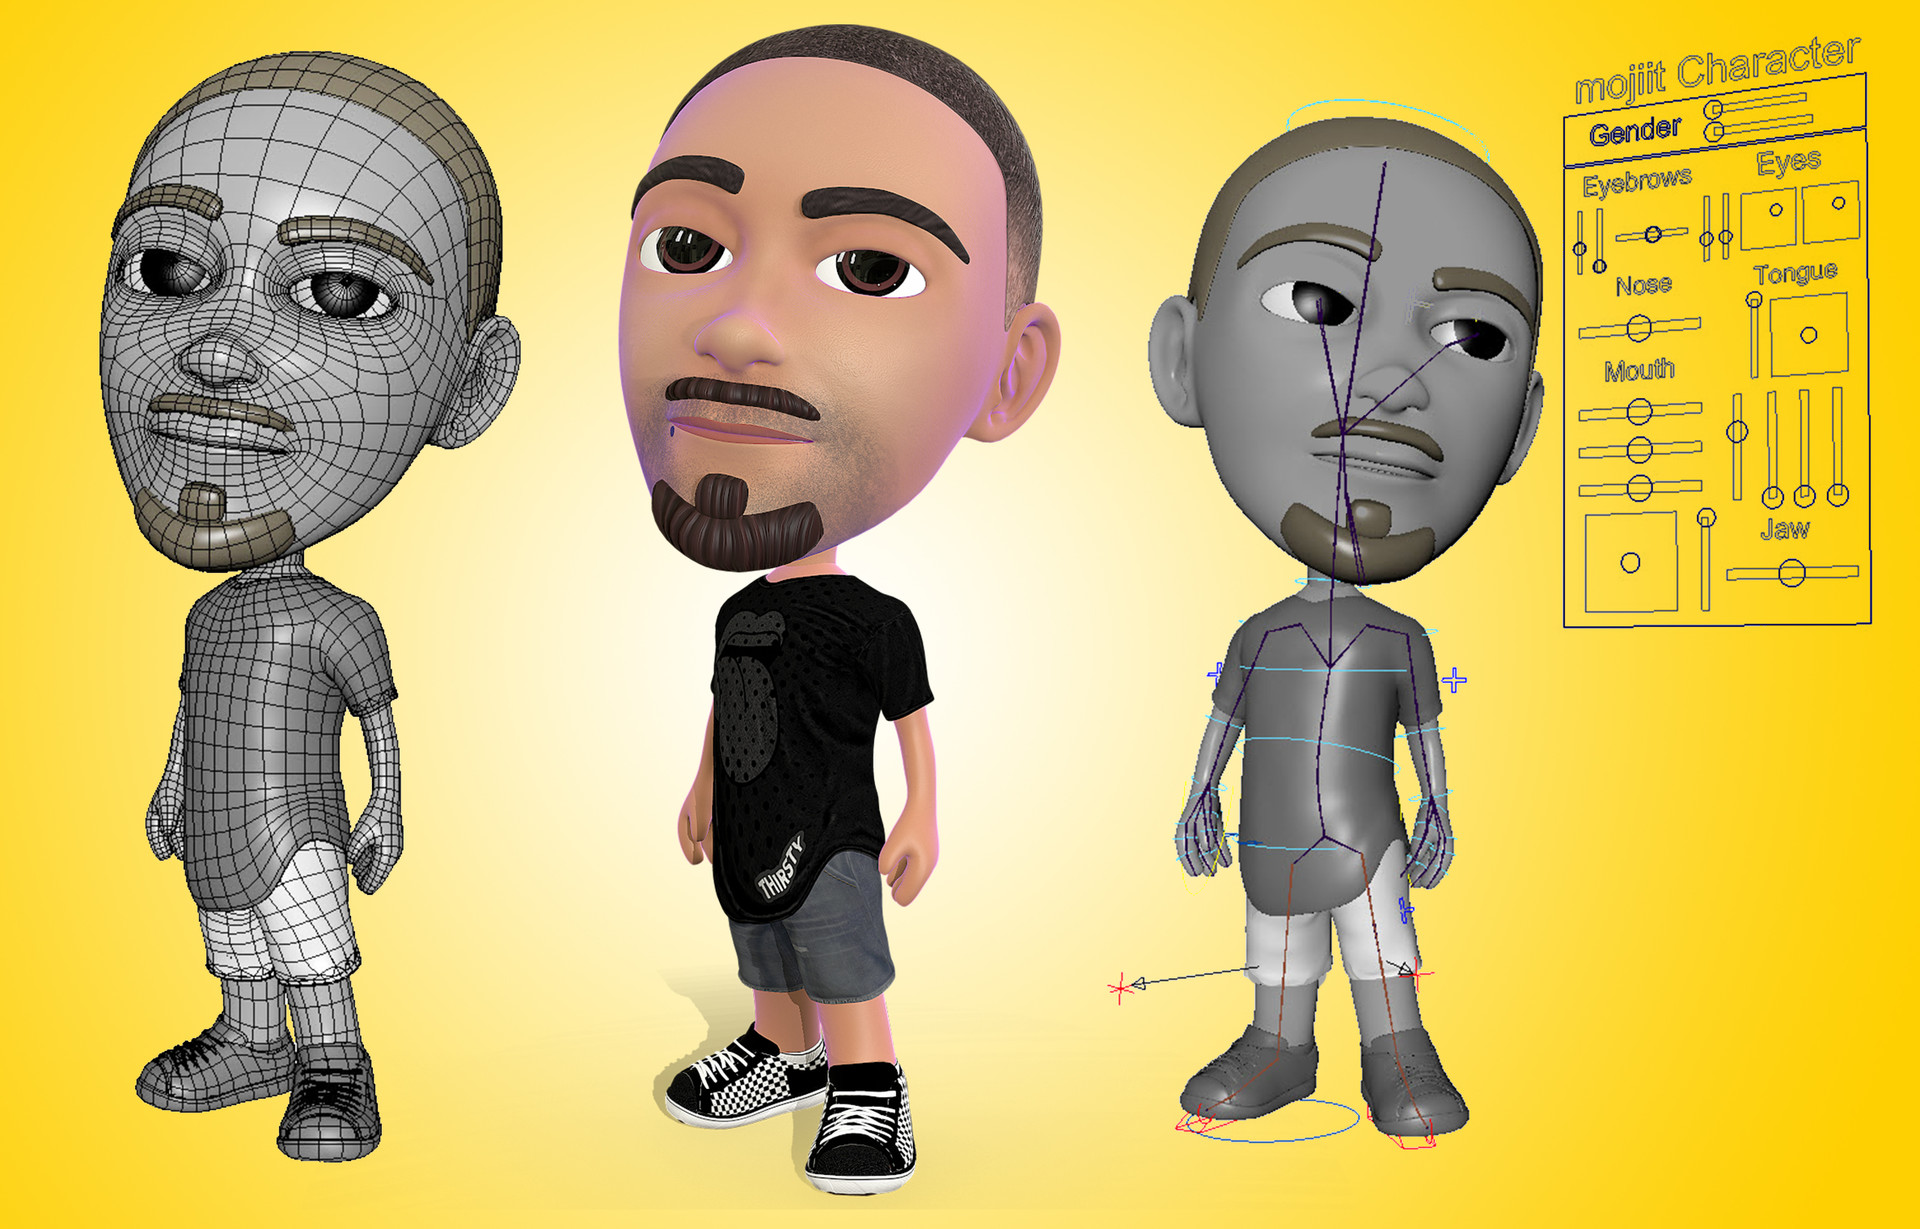 Designed & rigged a customizable Avatar to look like a representation of anyone for the Mojiit app.